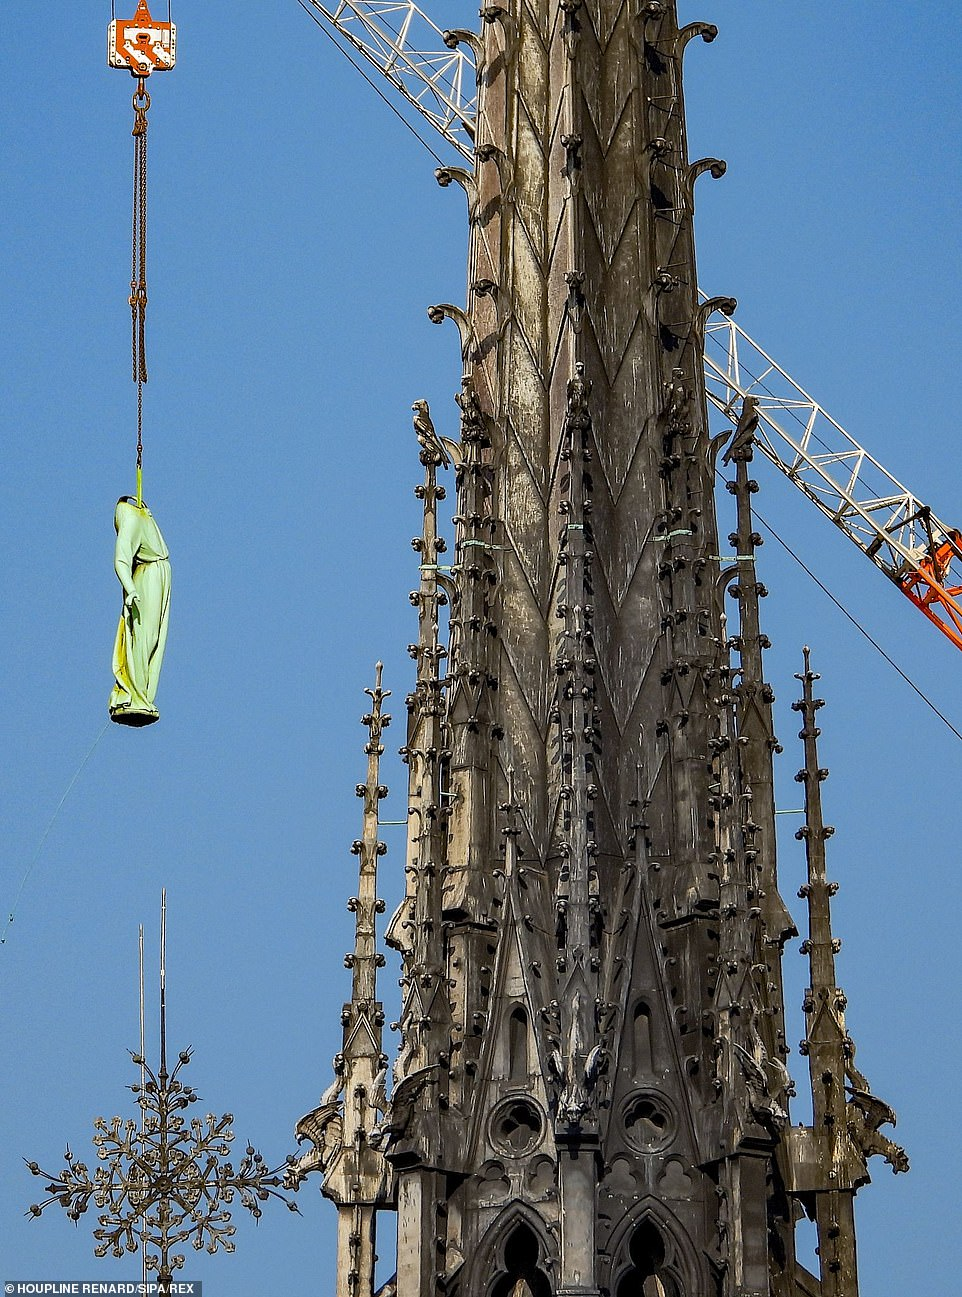 Last month cranes lifted the massive copper statues from their positions on the cathedral walls